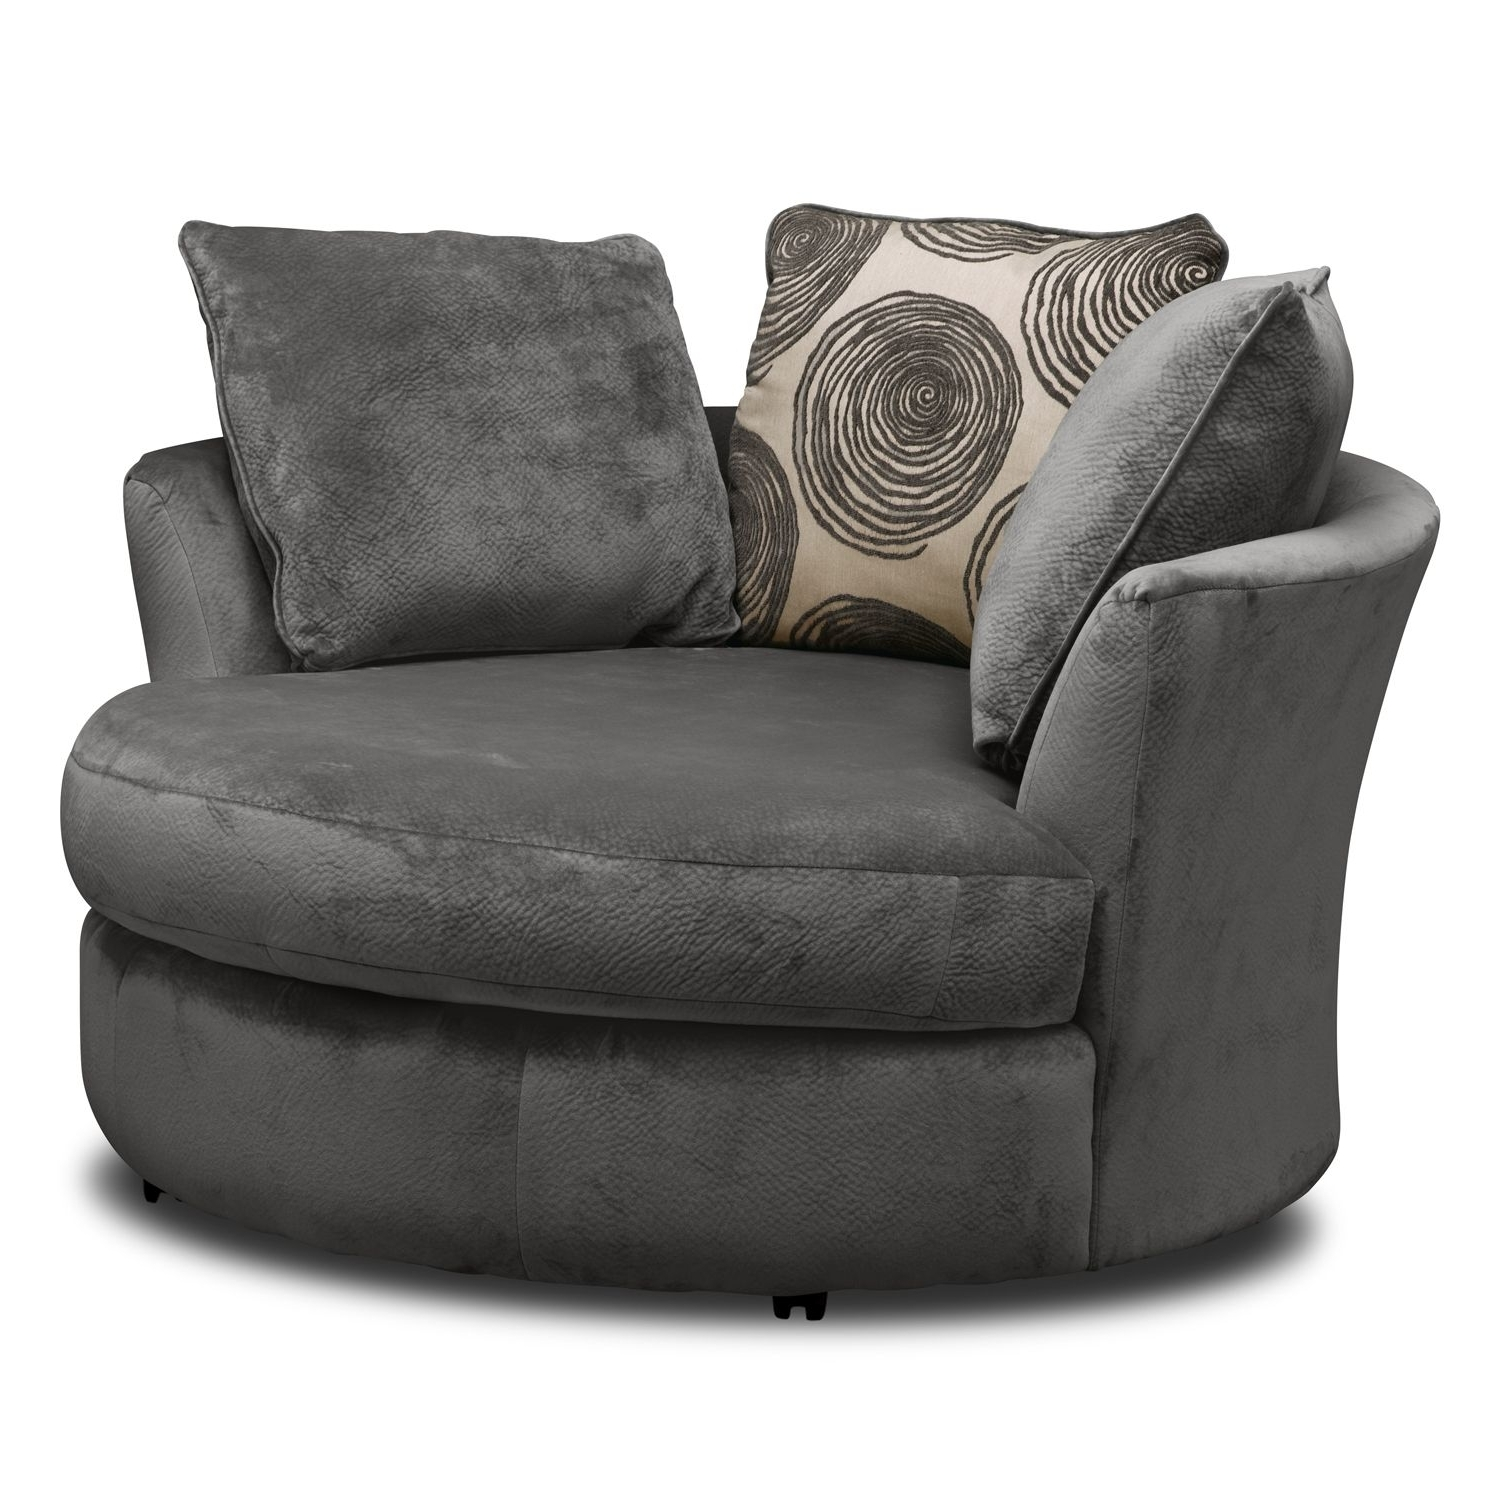 Oversized Round Swivel Chair With With Regard To Big Round Sofa Chairs (View 12 of 15)